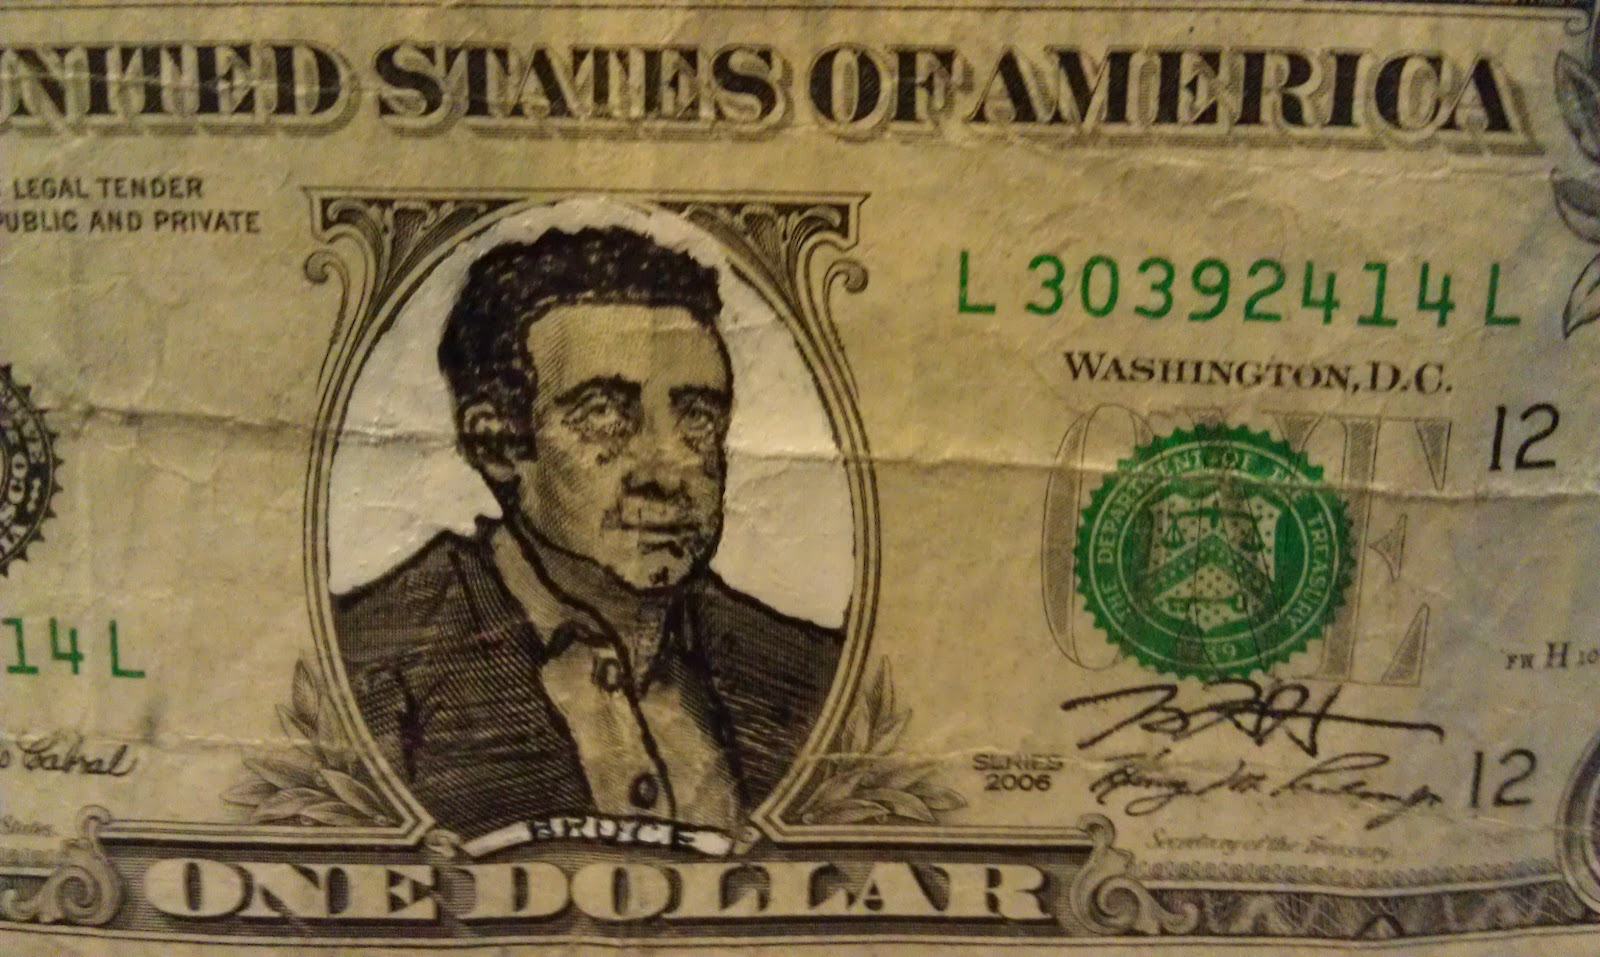 1600x957 The Art Of Jeremy Hara Drawing On Dollars Refacing Our Currency